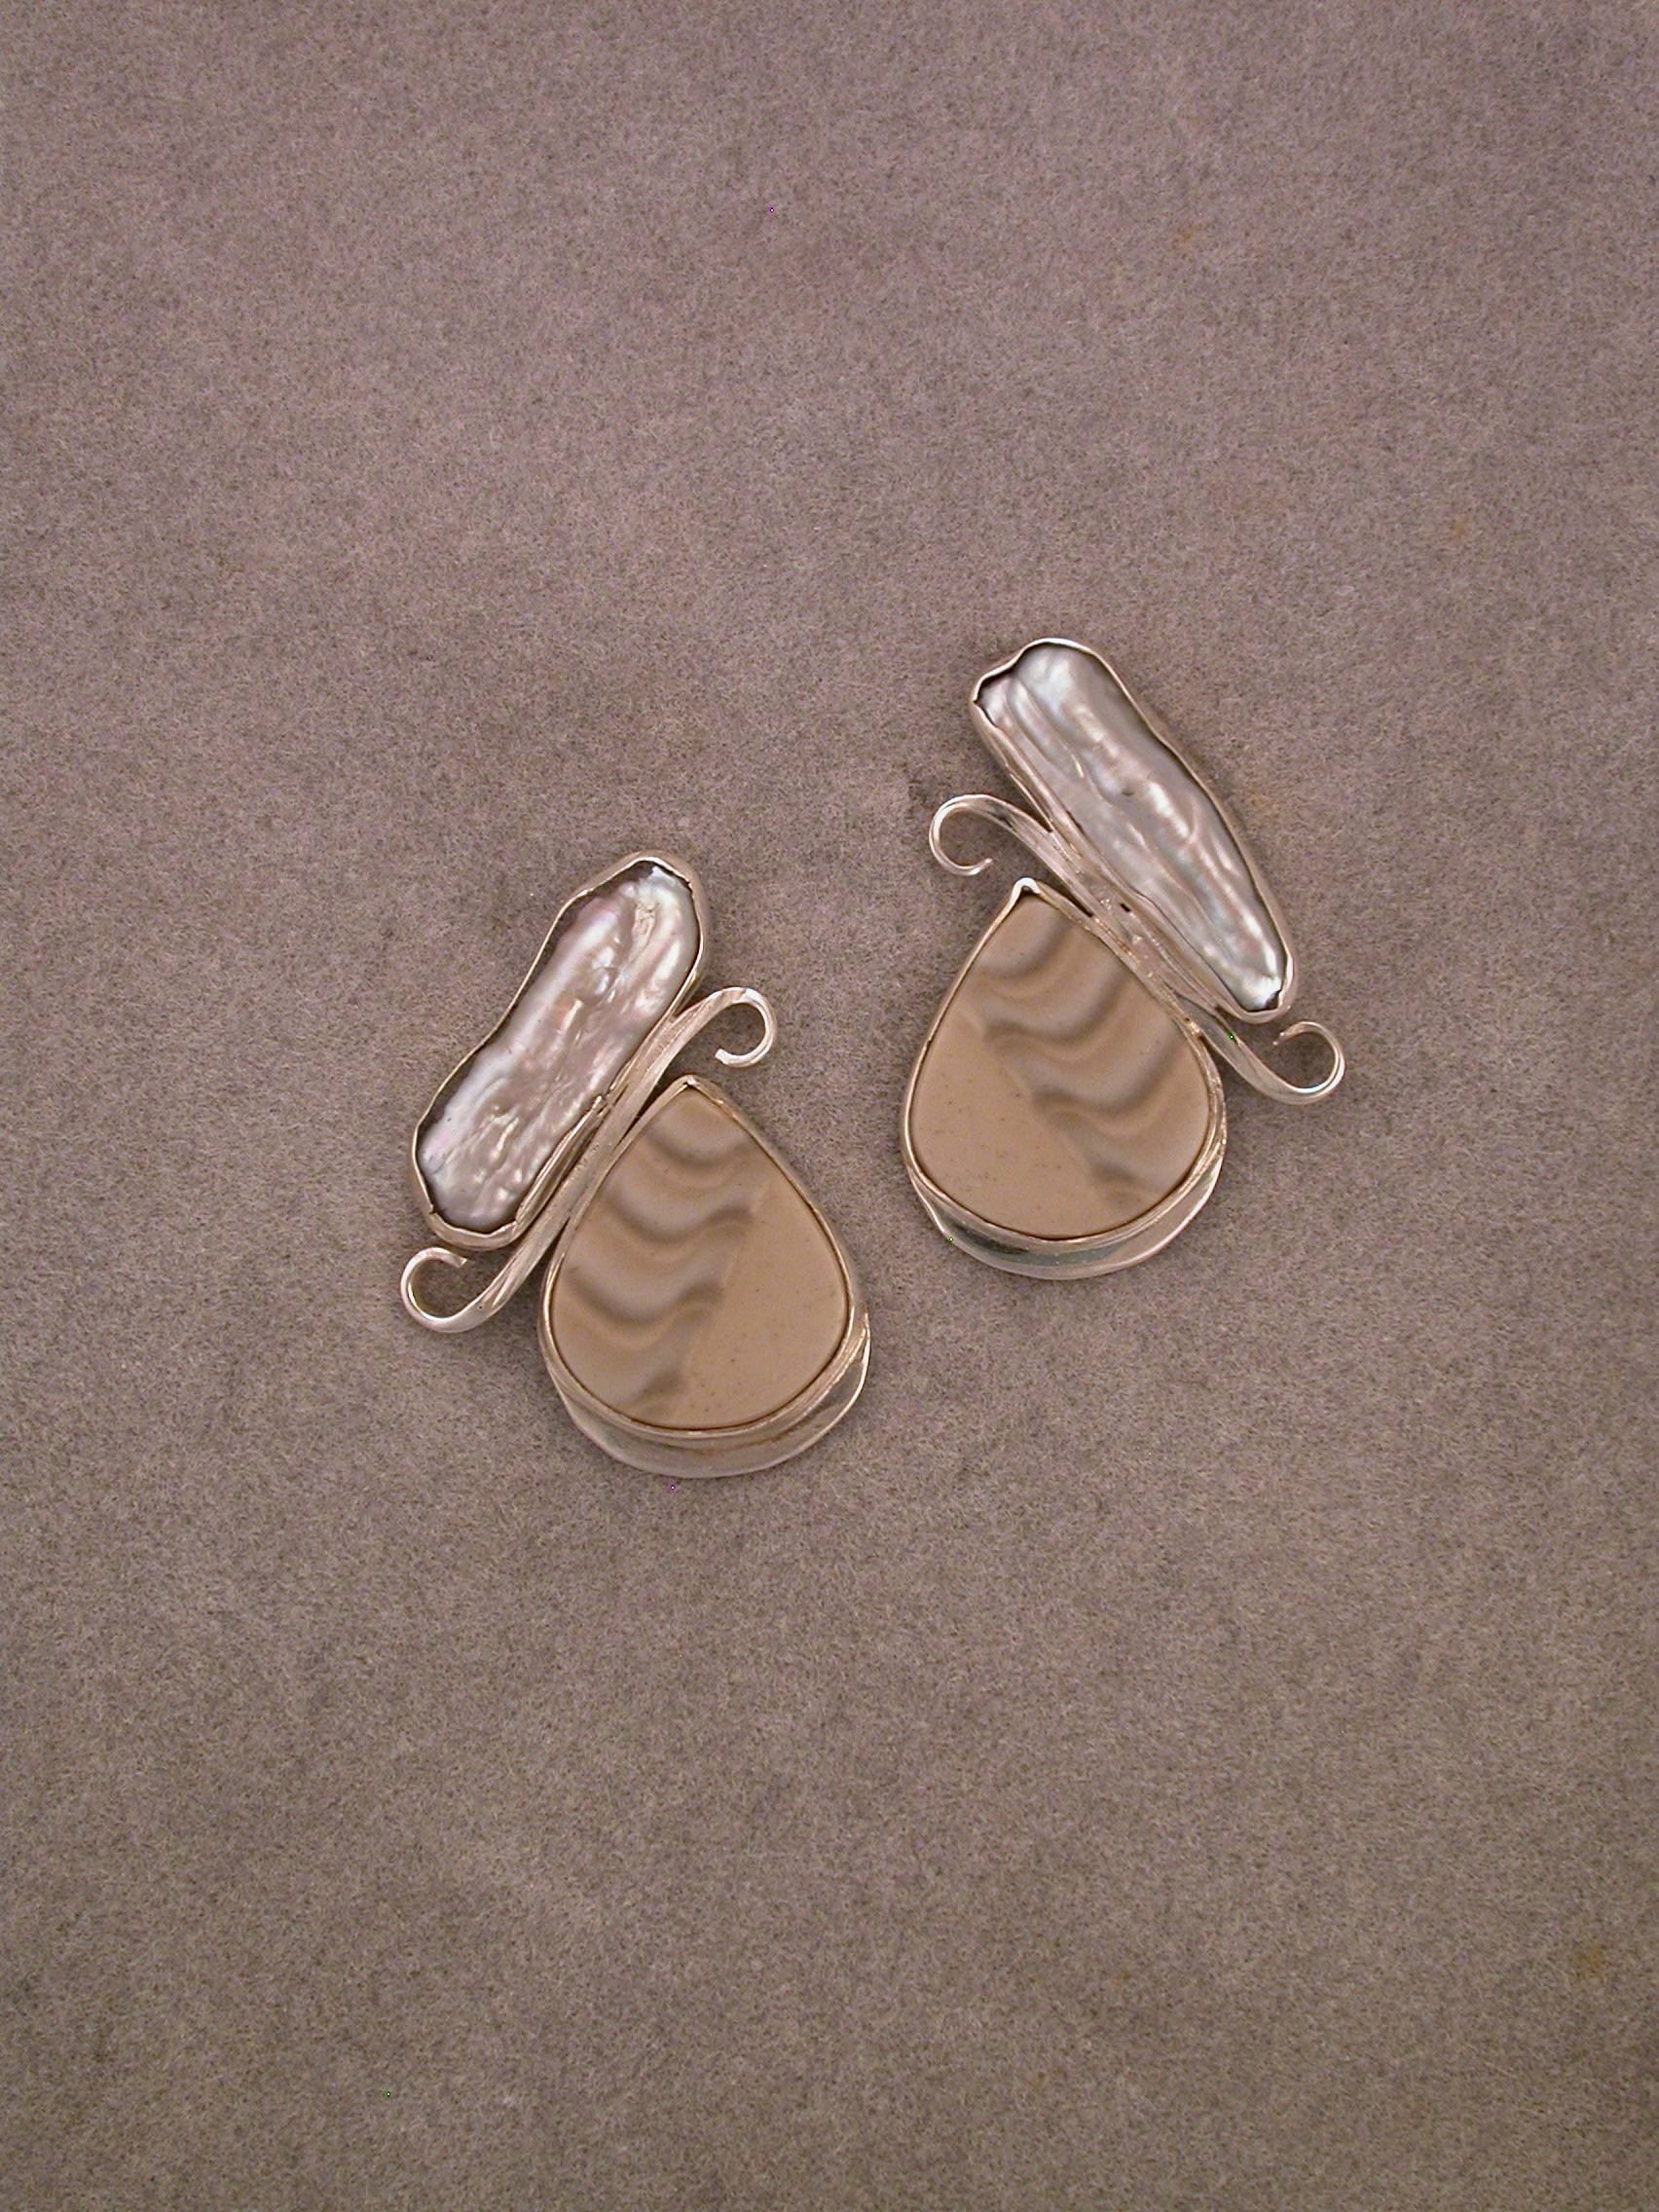 Polish Flint Earrings  Polish Flint Earrings